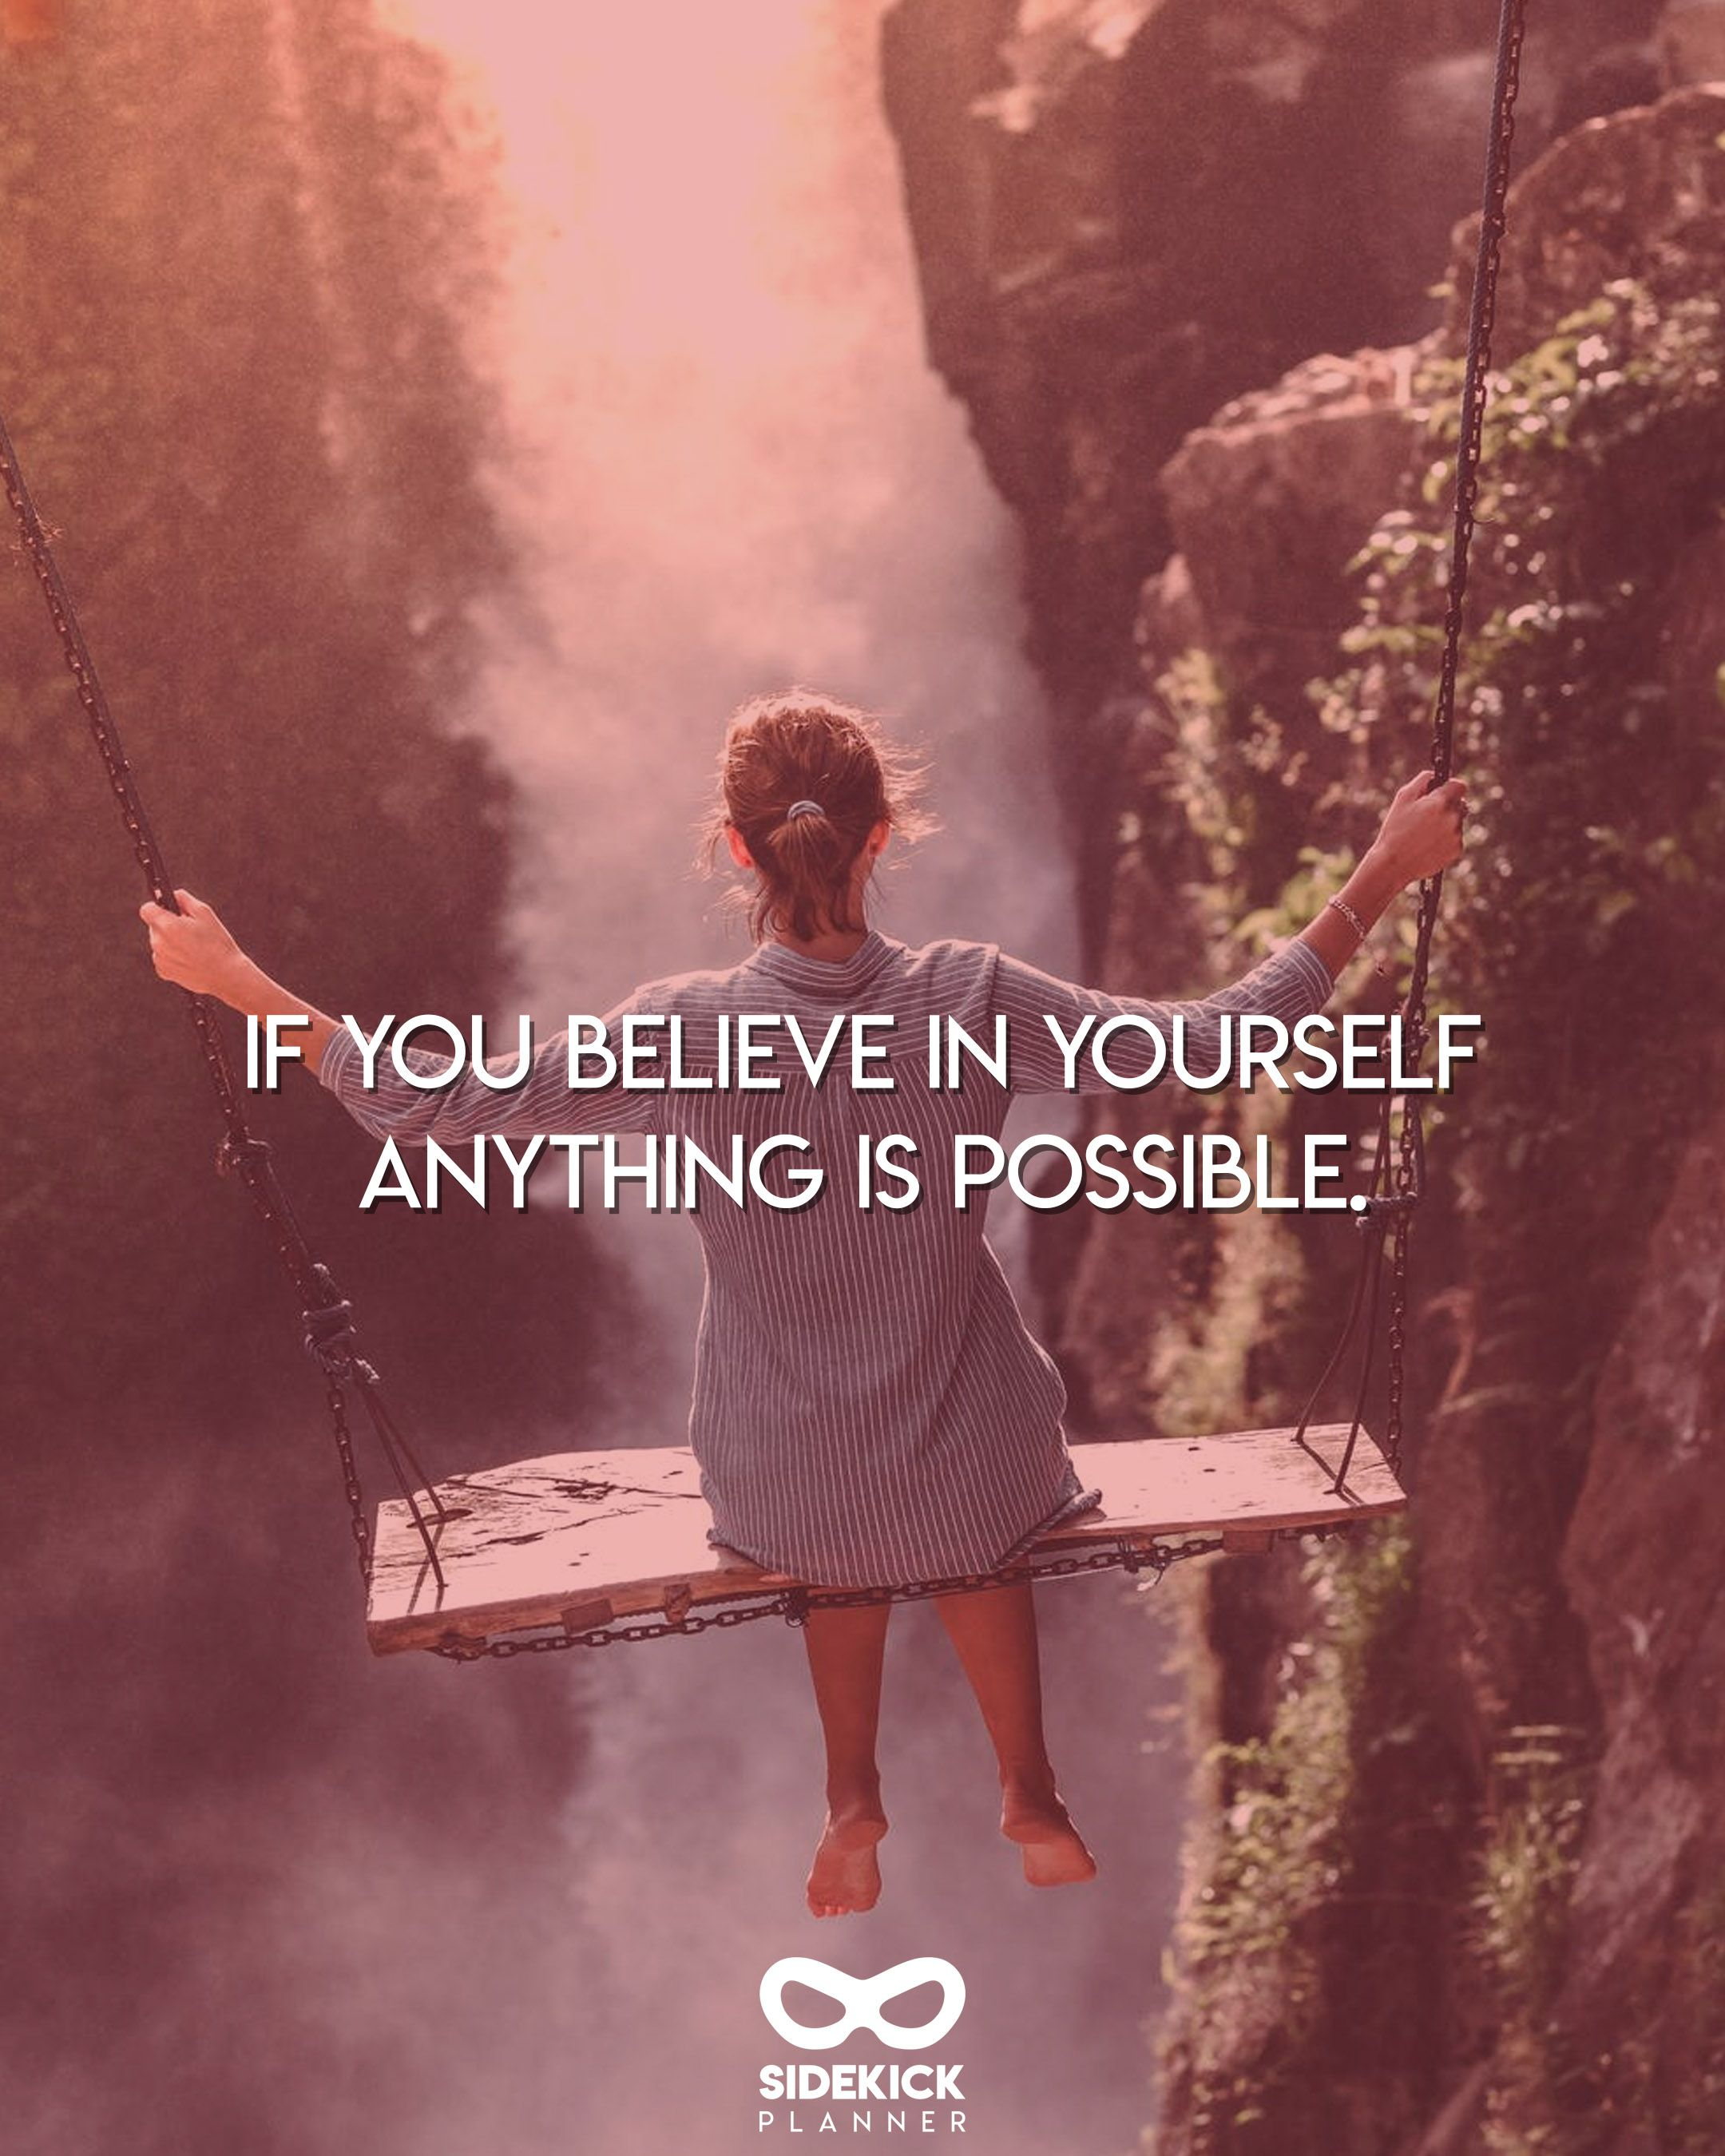 If You Believe In Yourself Anything Is Possible Daily Motivation Quote From Sidekick Planner Daily Motivational Quotes Motivational Quotes Daily Motivation